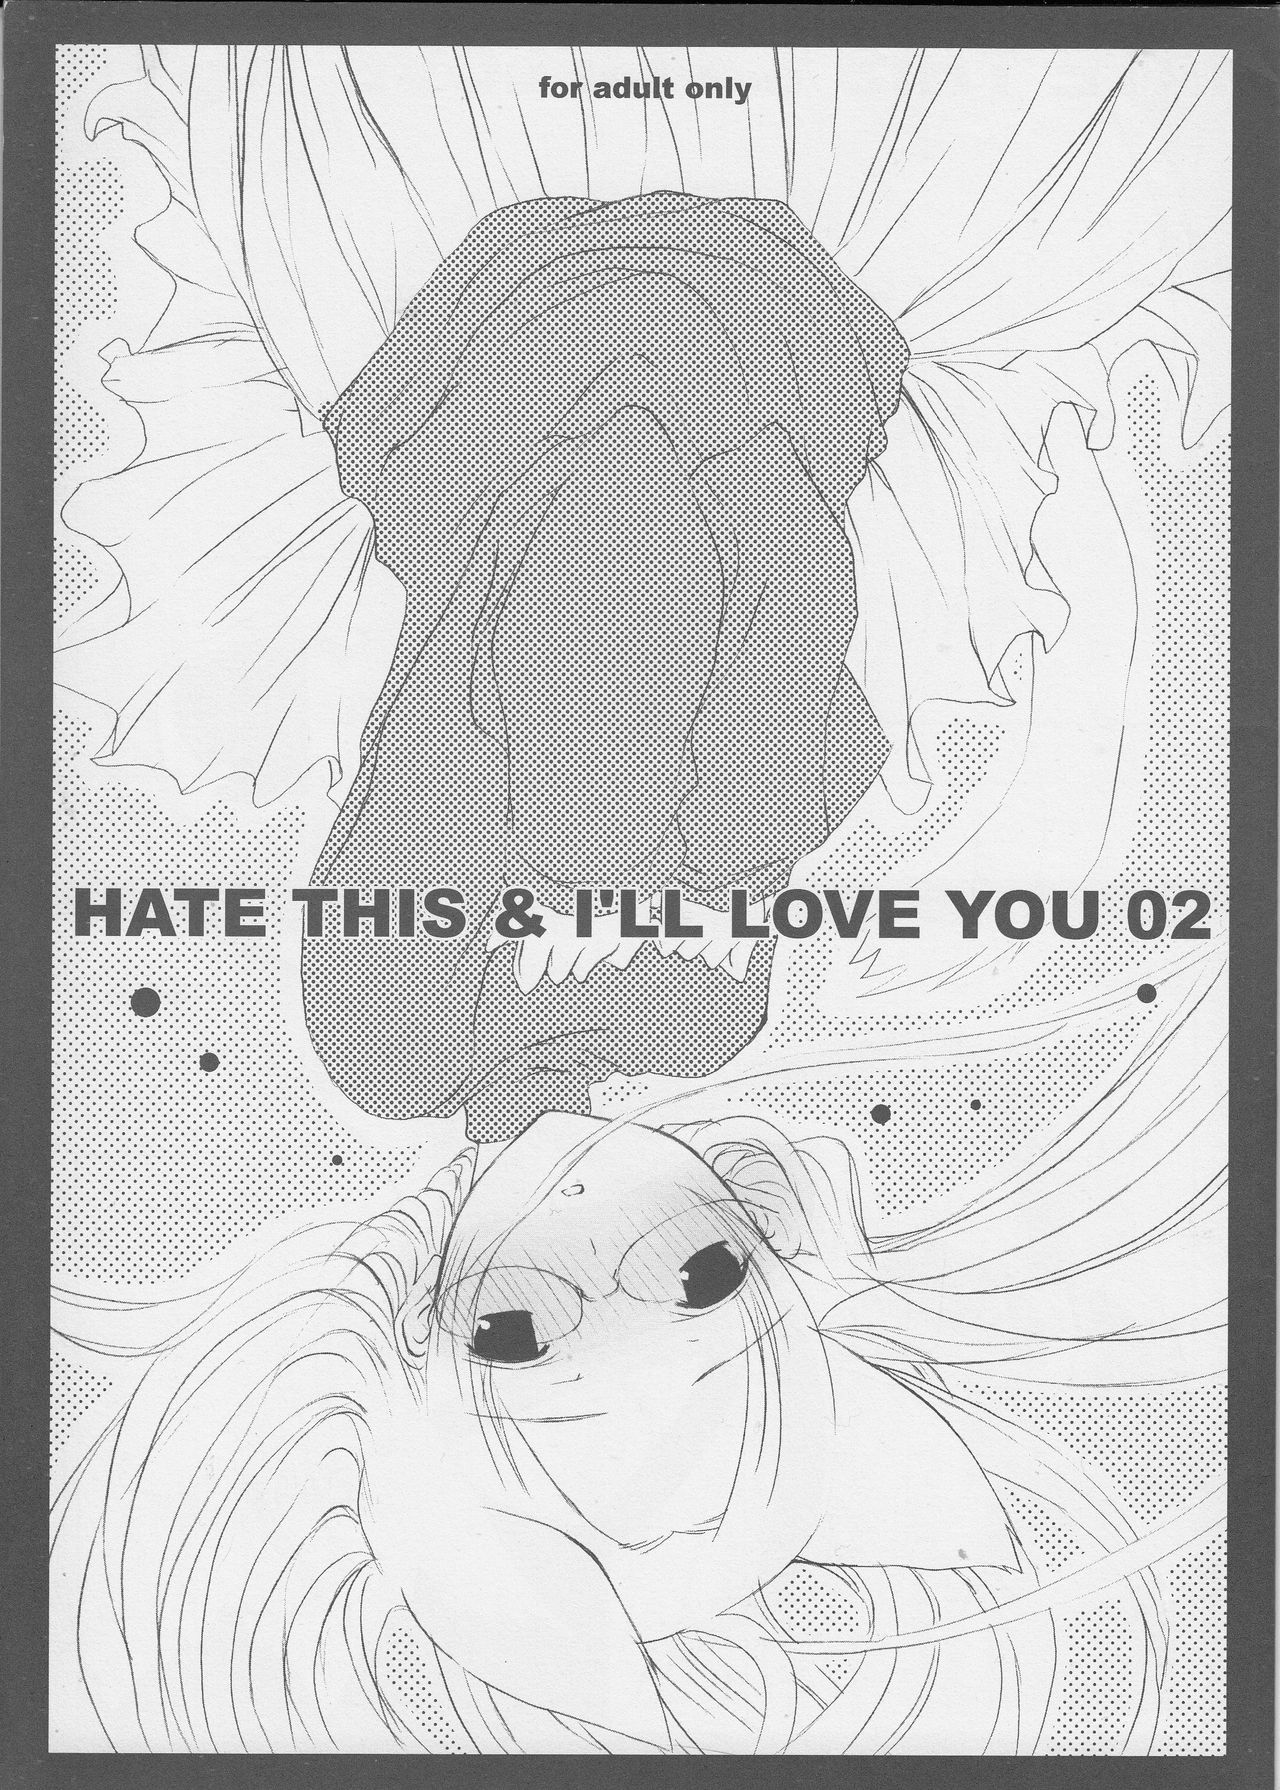 HATE THIS &I'LL LOVE YOU 02